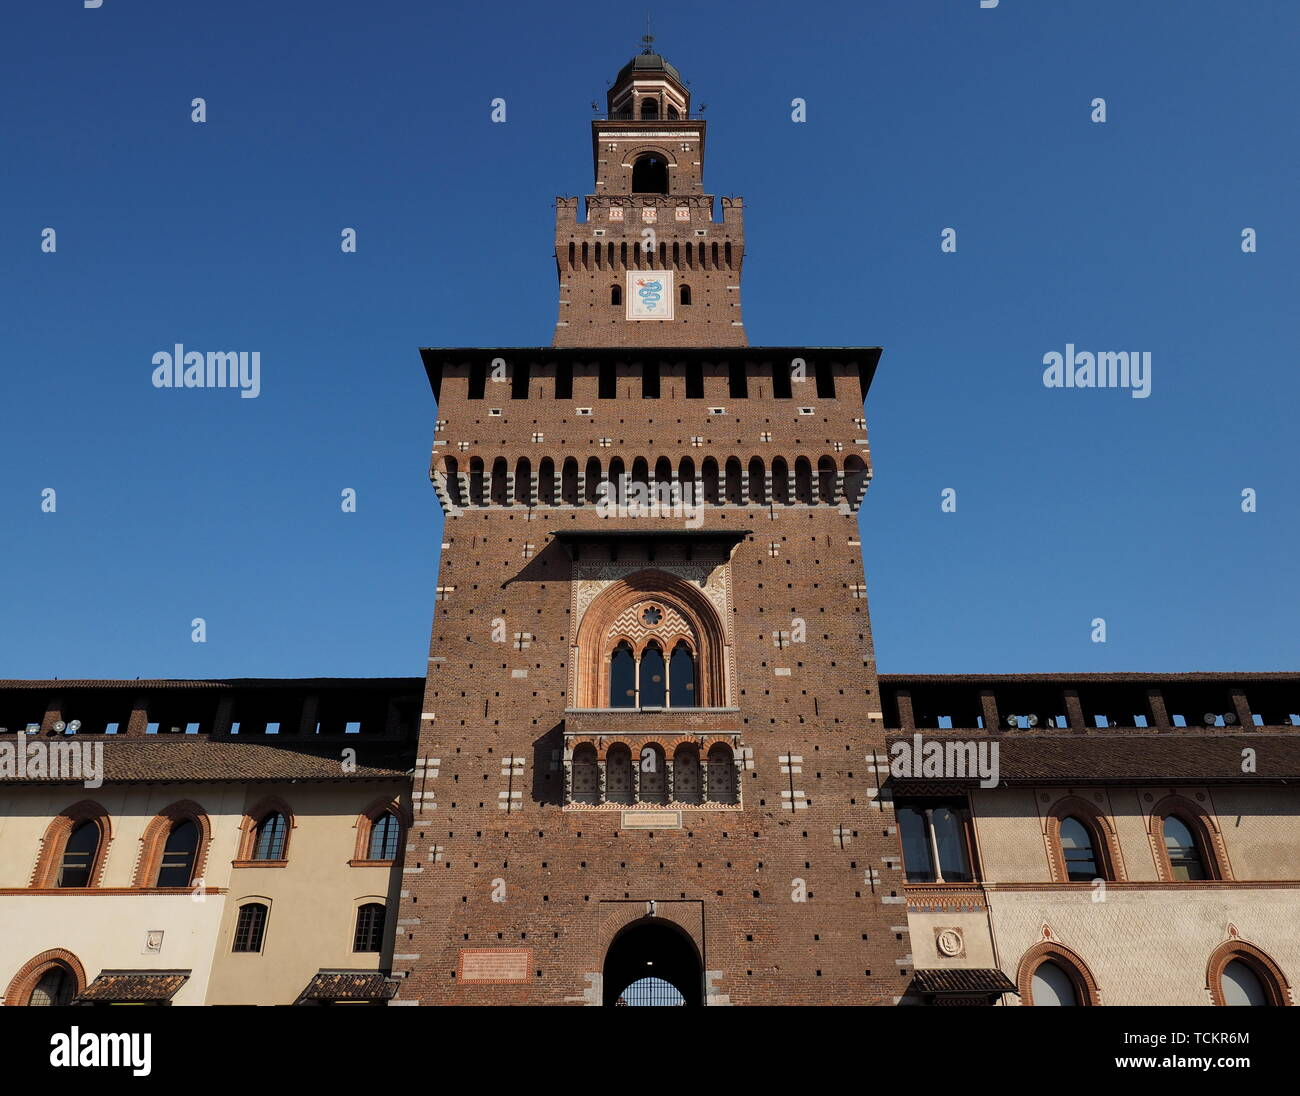 Milan (Lombardy, Italy): internal court of the medieval castle known as Castello Sforzesco (built at end of 15th century). Stock Photo